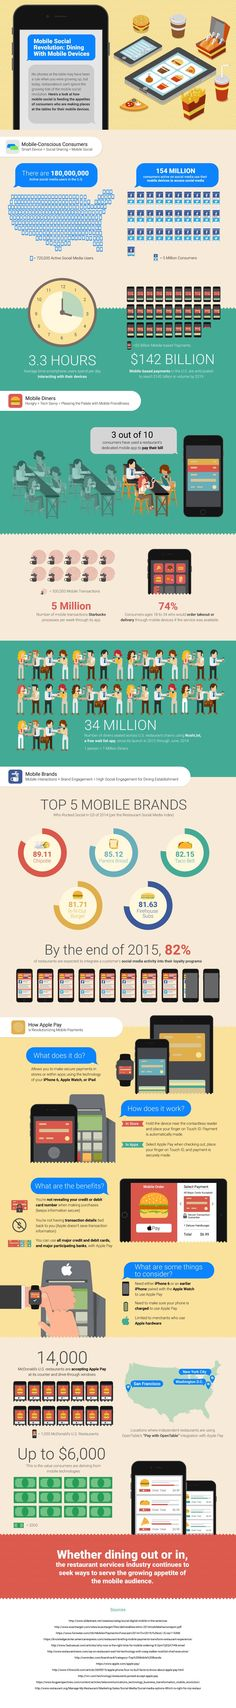 Mobile Social Revolution: Dining With Mobile Devices #infographic #Mobile #Technology